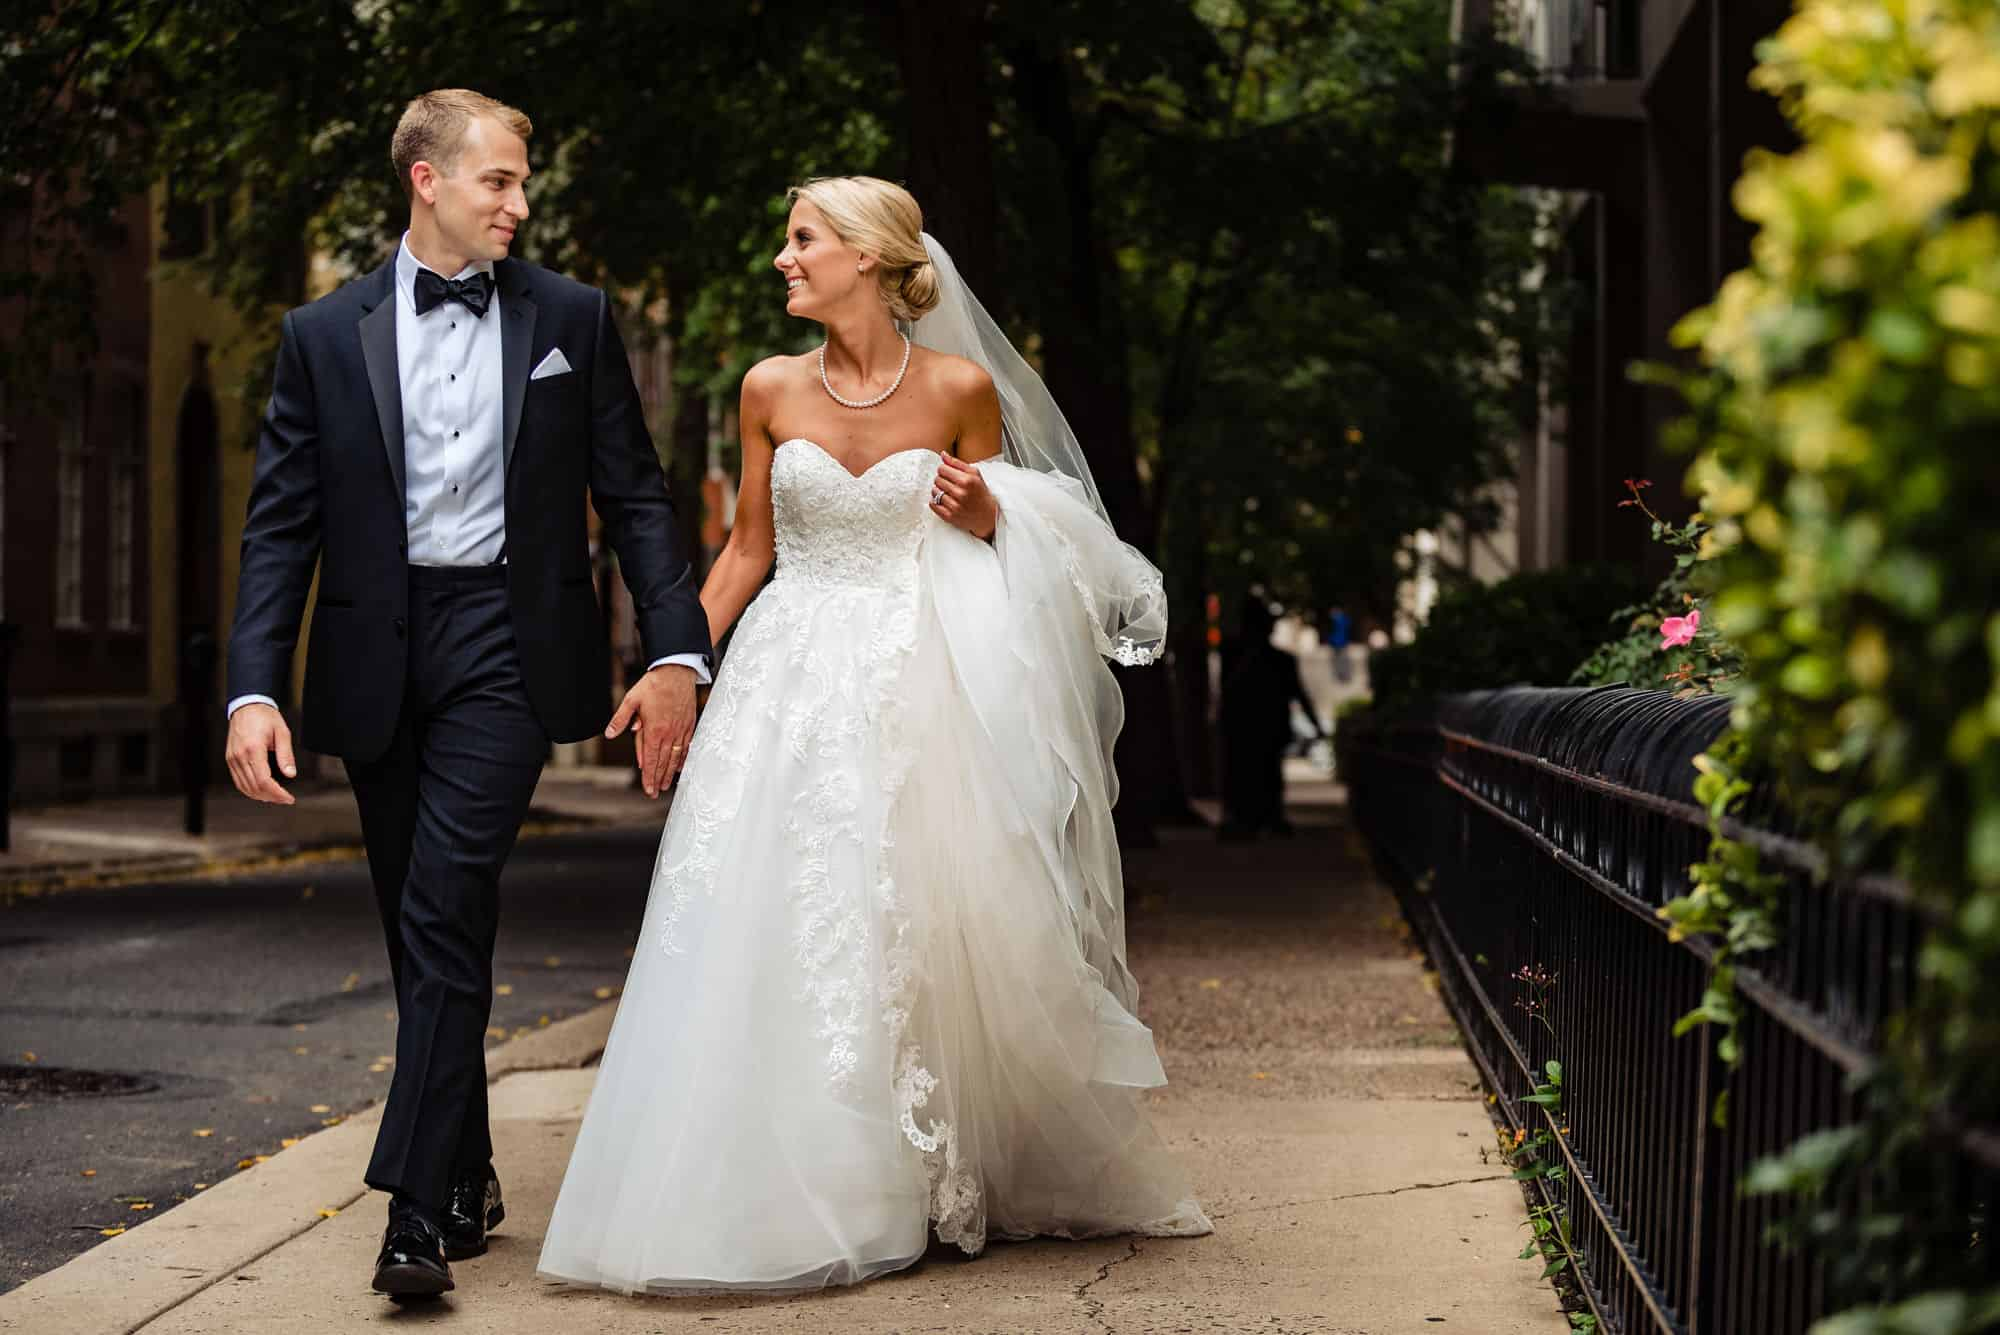 Ritz Carlton Philadelphia Wedding|bride and groom holding hands walking down street